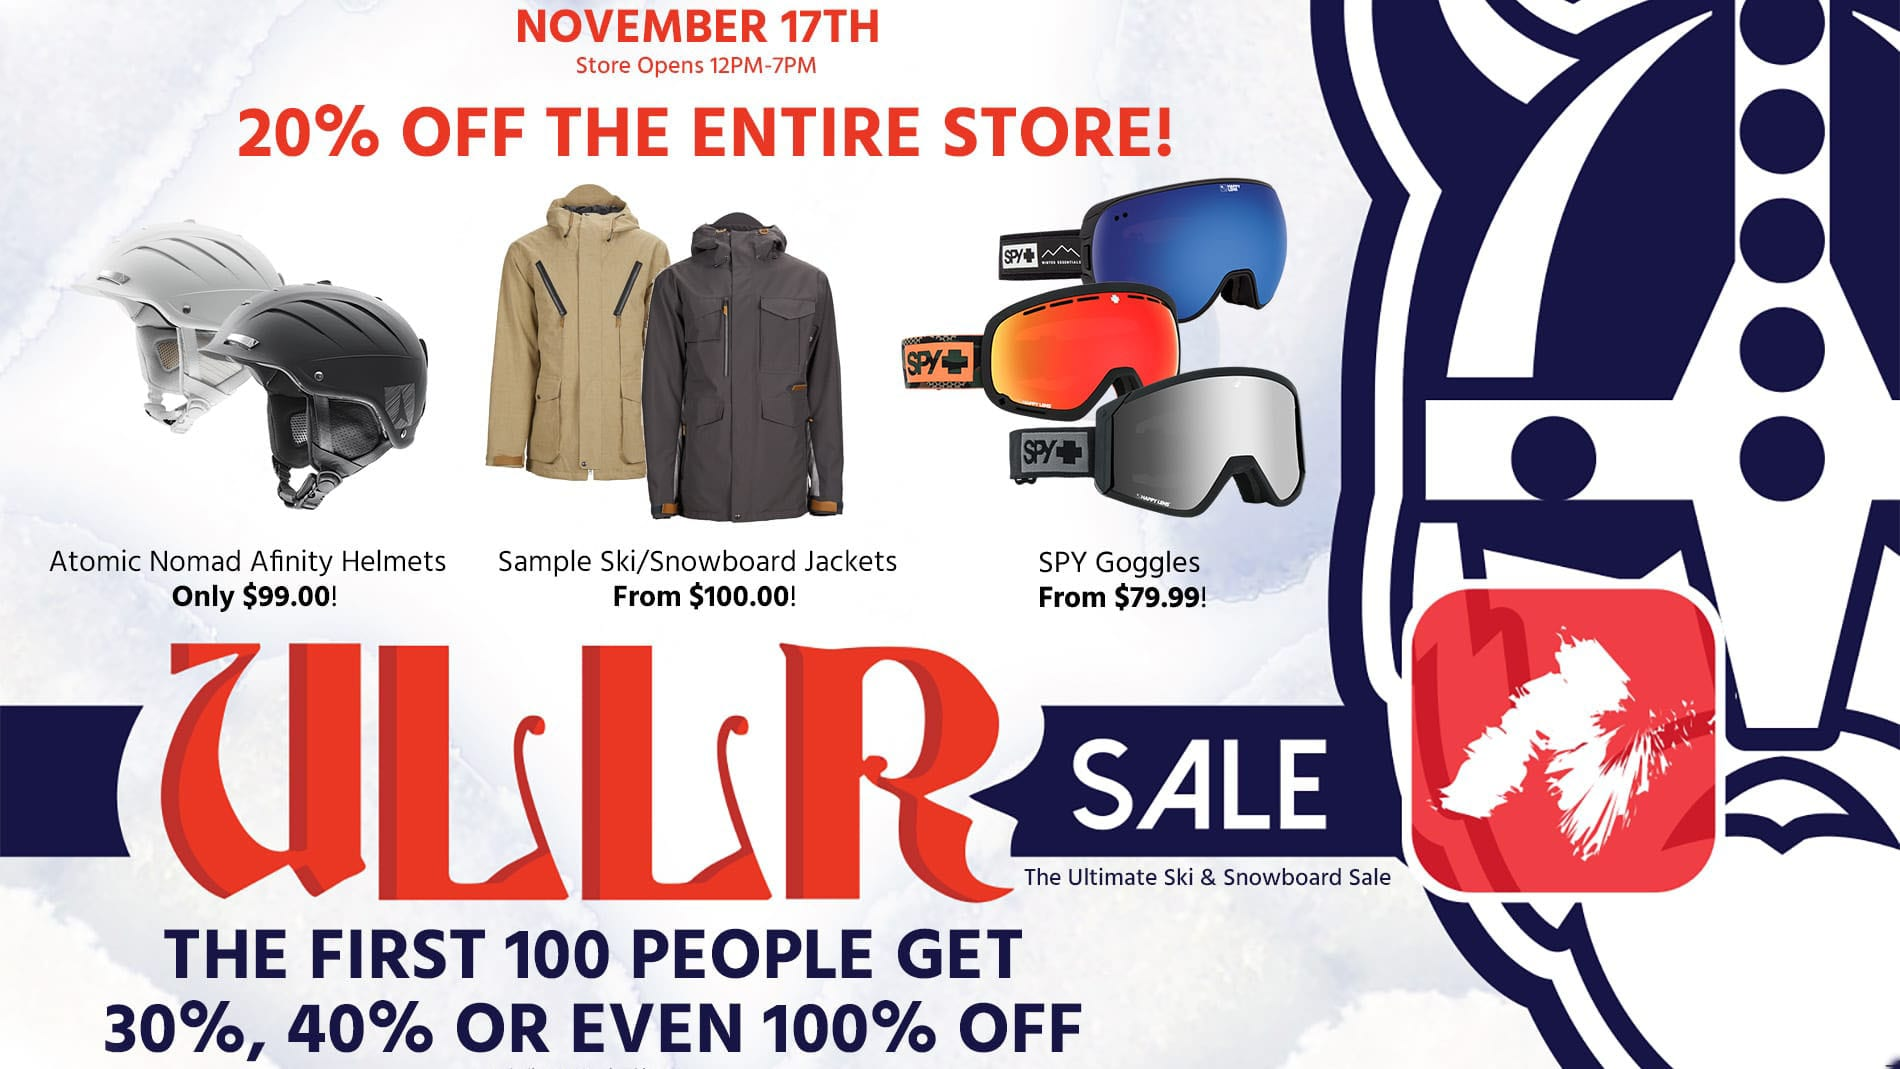 Marketing Case Study - ULLR Sale Chilliwack